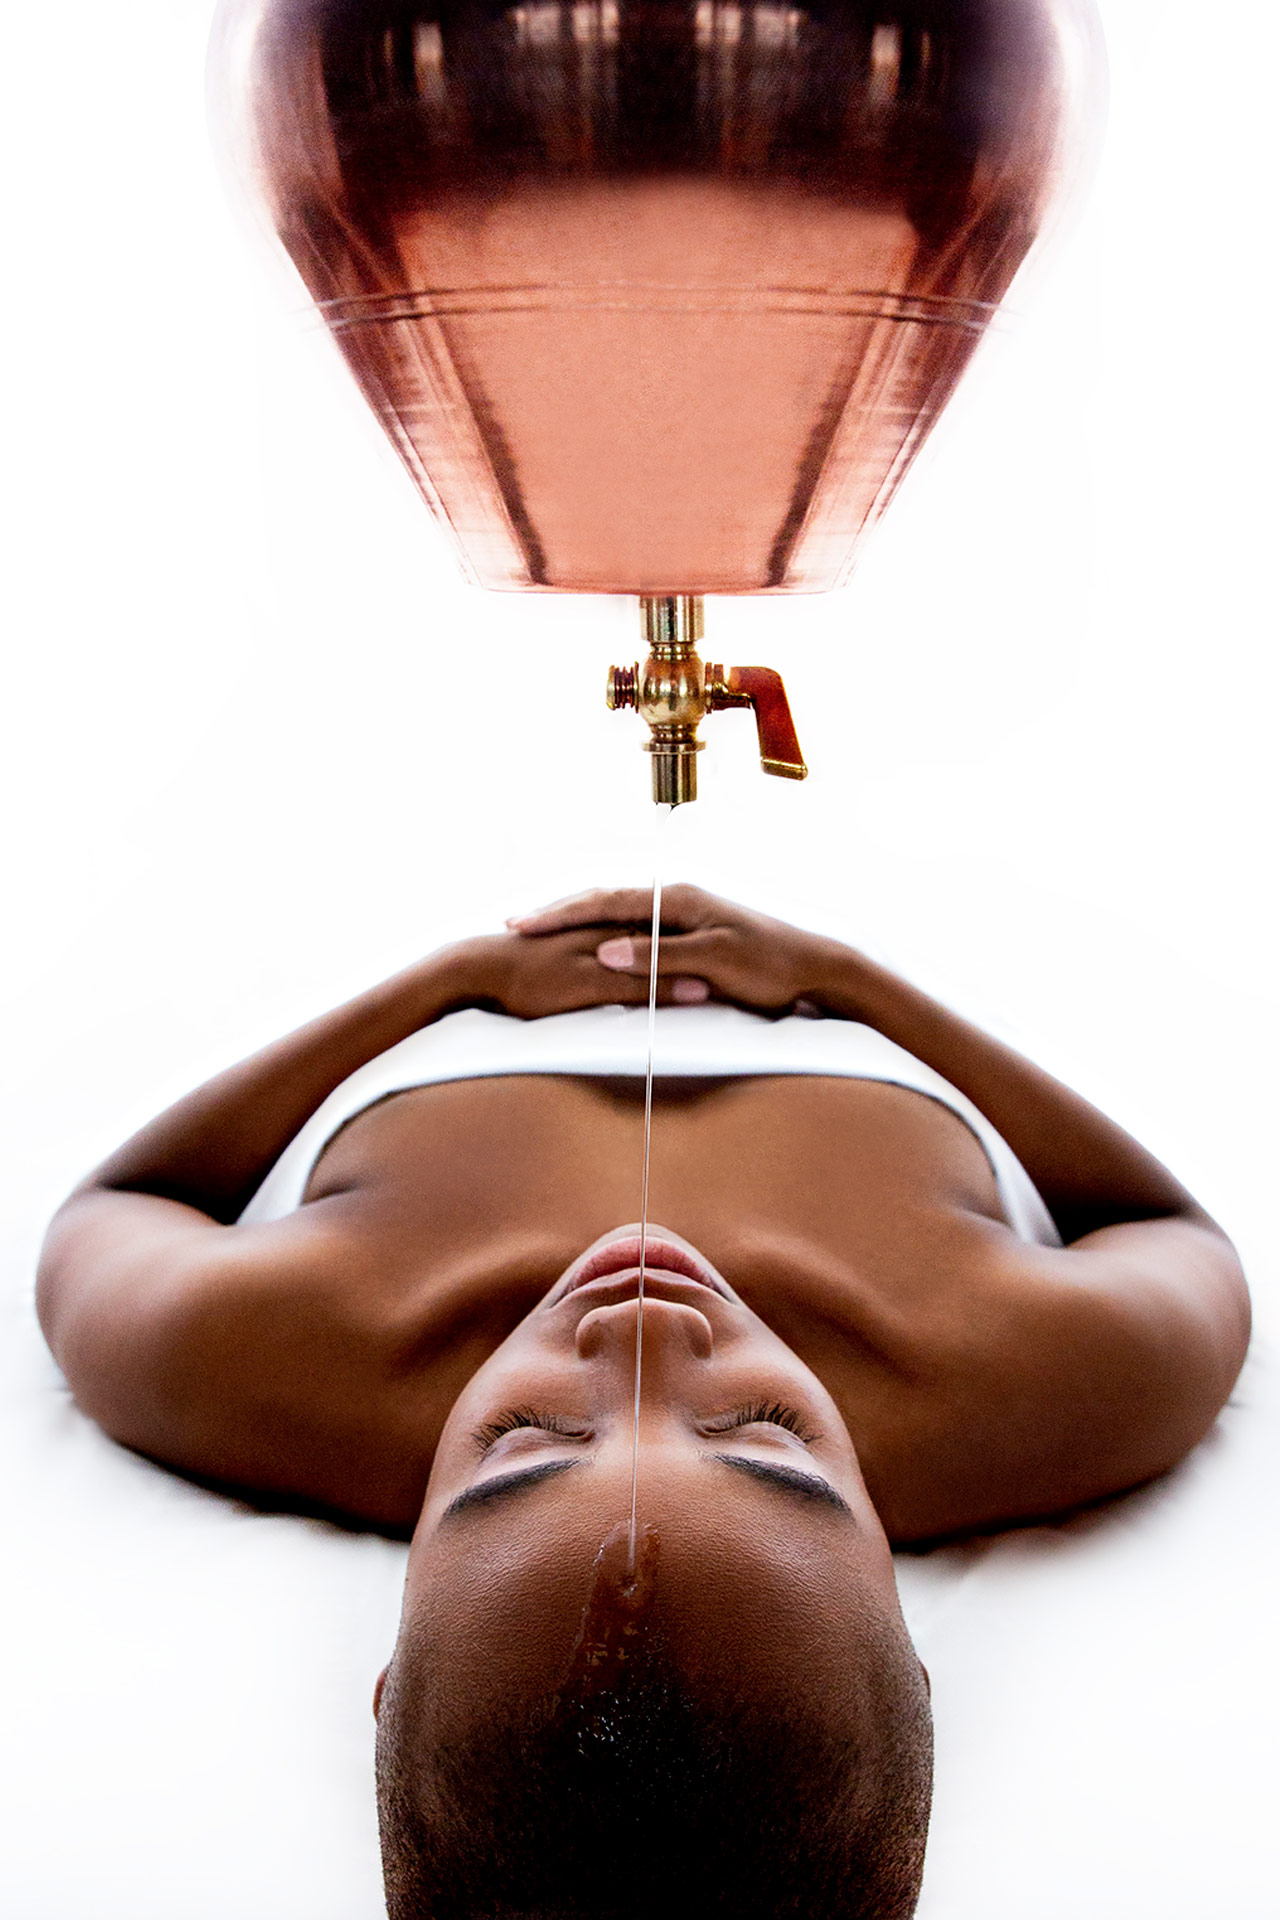 a woman getting a spa treatment where a liquid is dripped onto her head